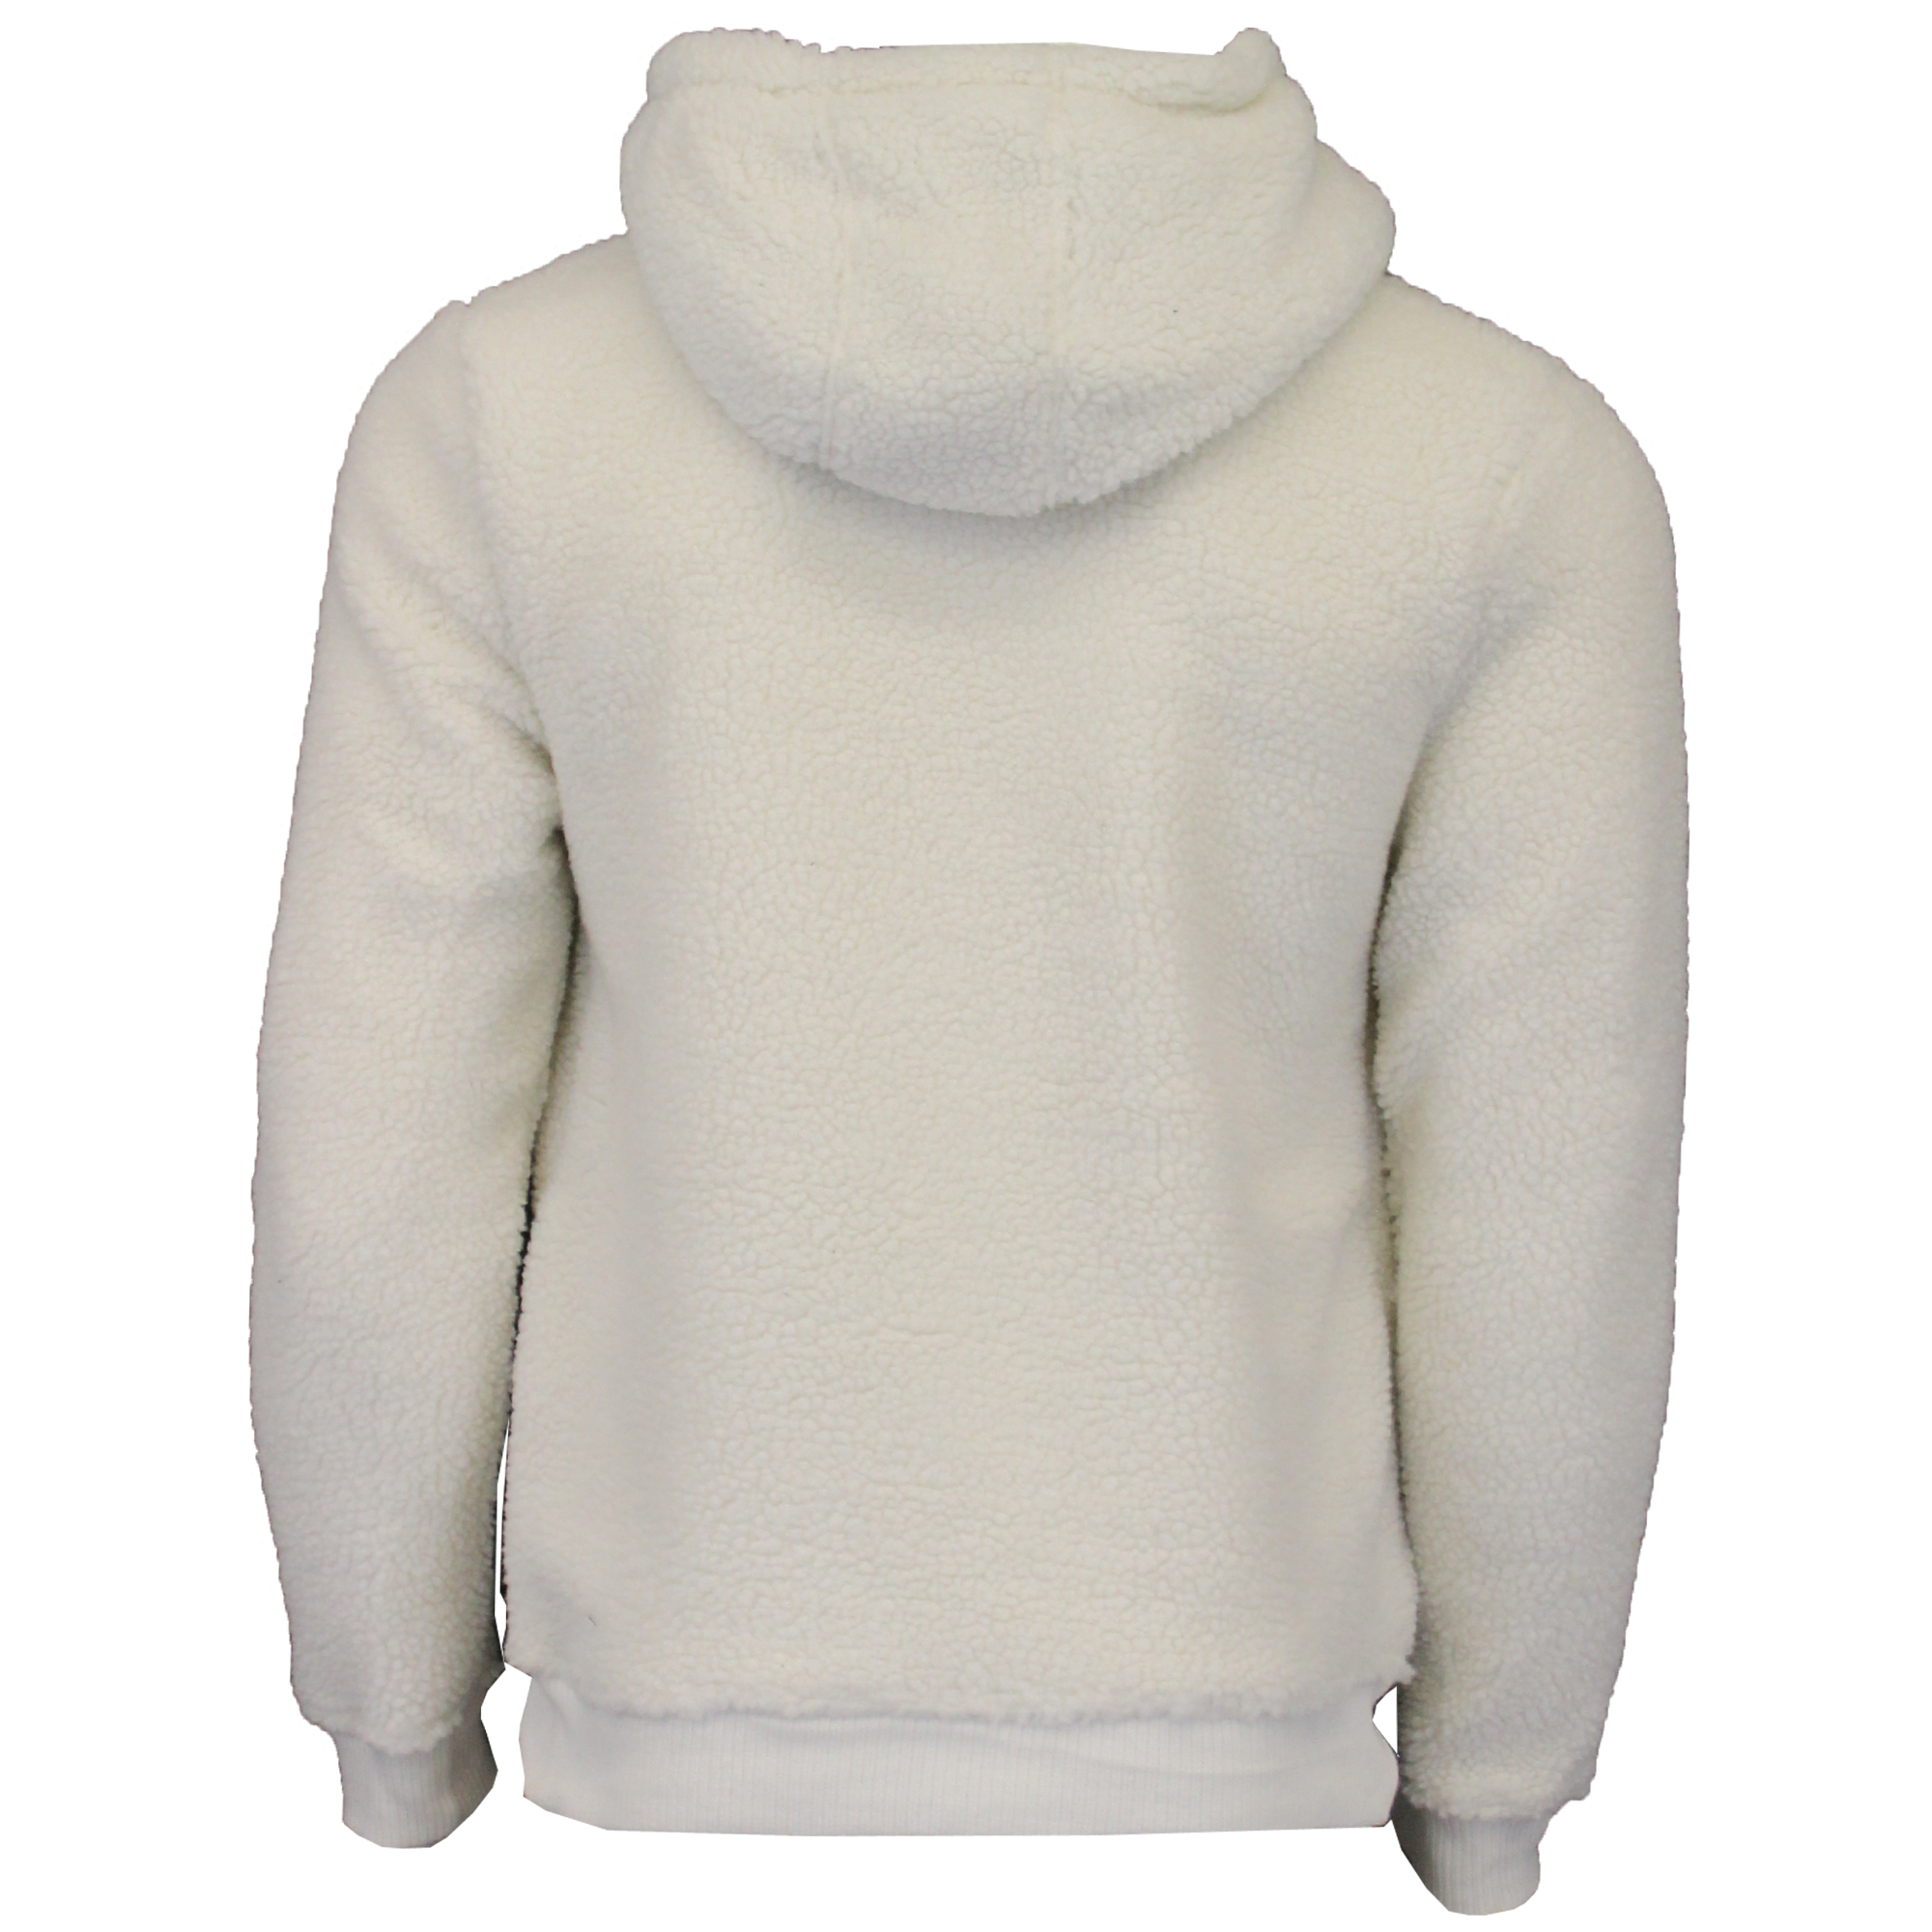 Mens-Sherpa-Fleece-Borg-Sweatshirt-Brave-Soul-Over-The-Head-GROMIT-Hooded-Top thumbnail 4